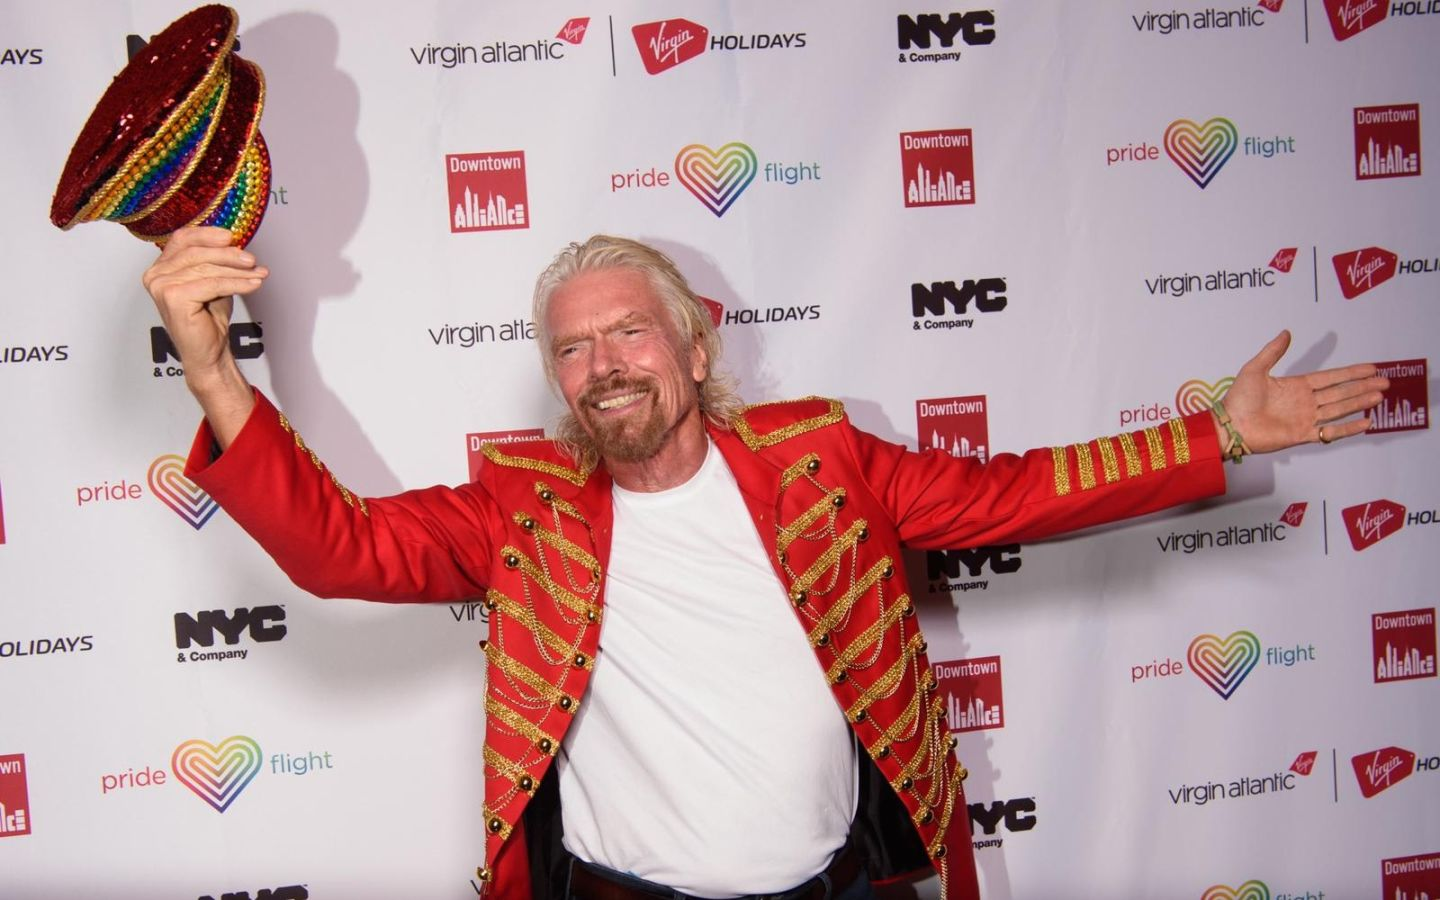 Richard Branson smiling, waving his hat and arms in the air at a Virgin Atlantic Pride event in New York